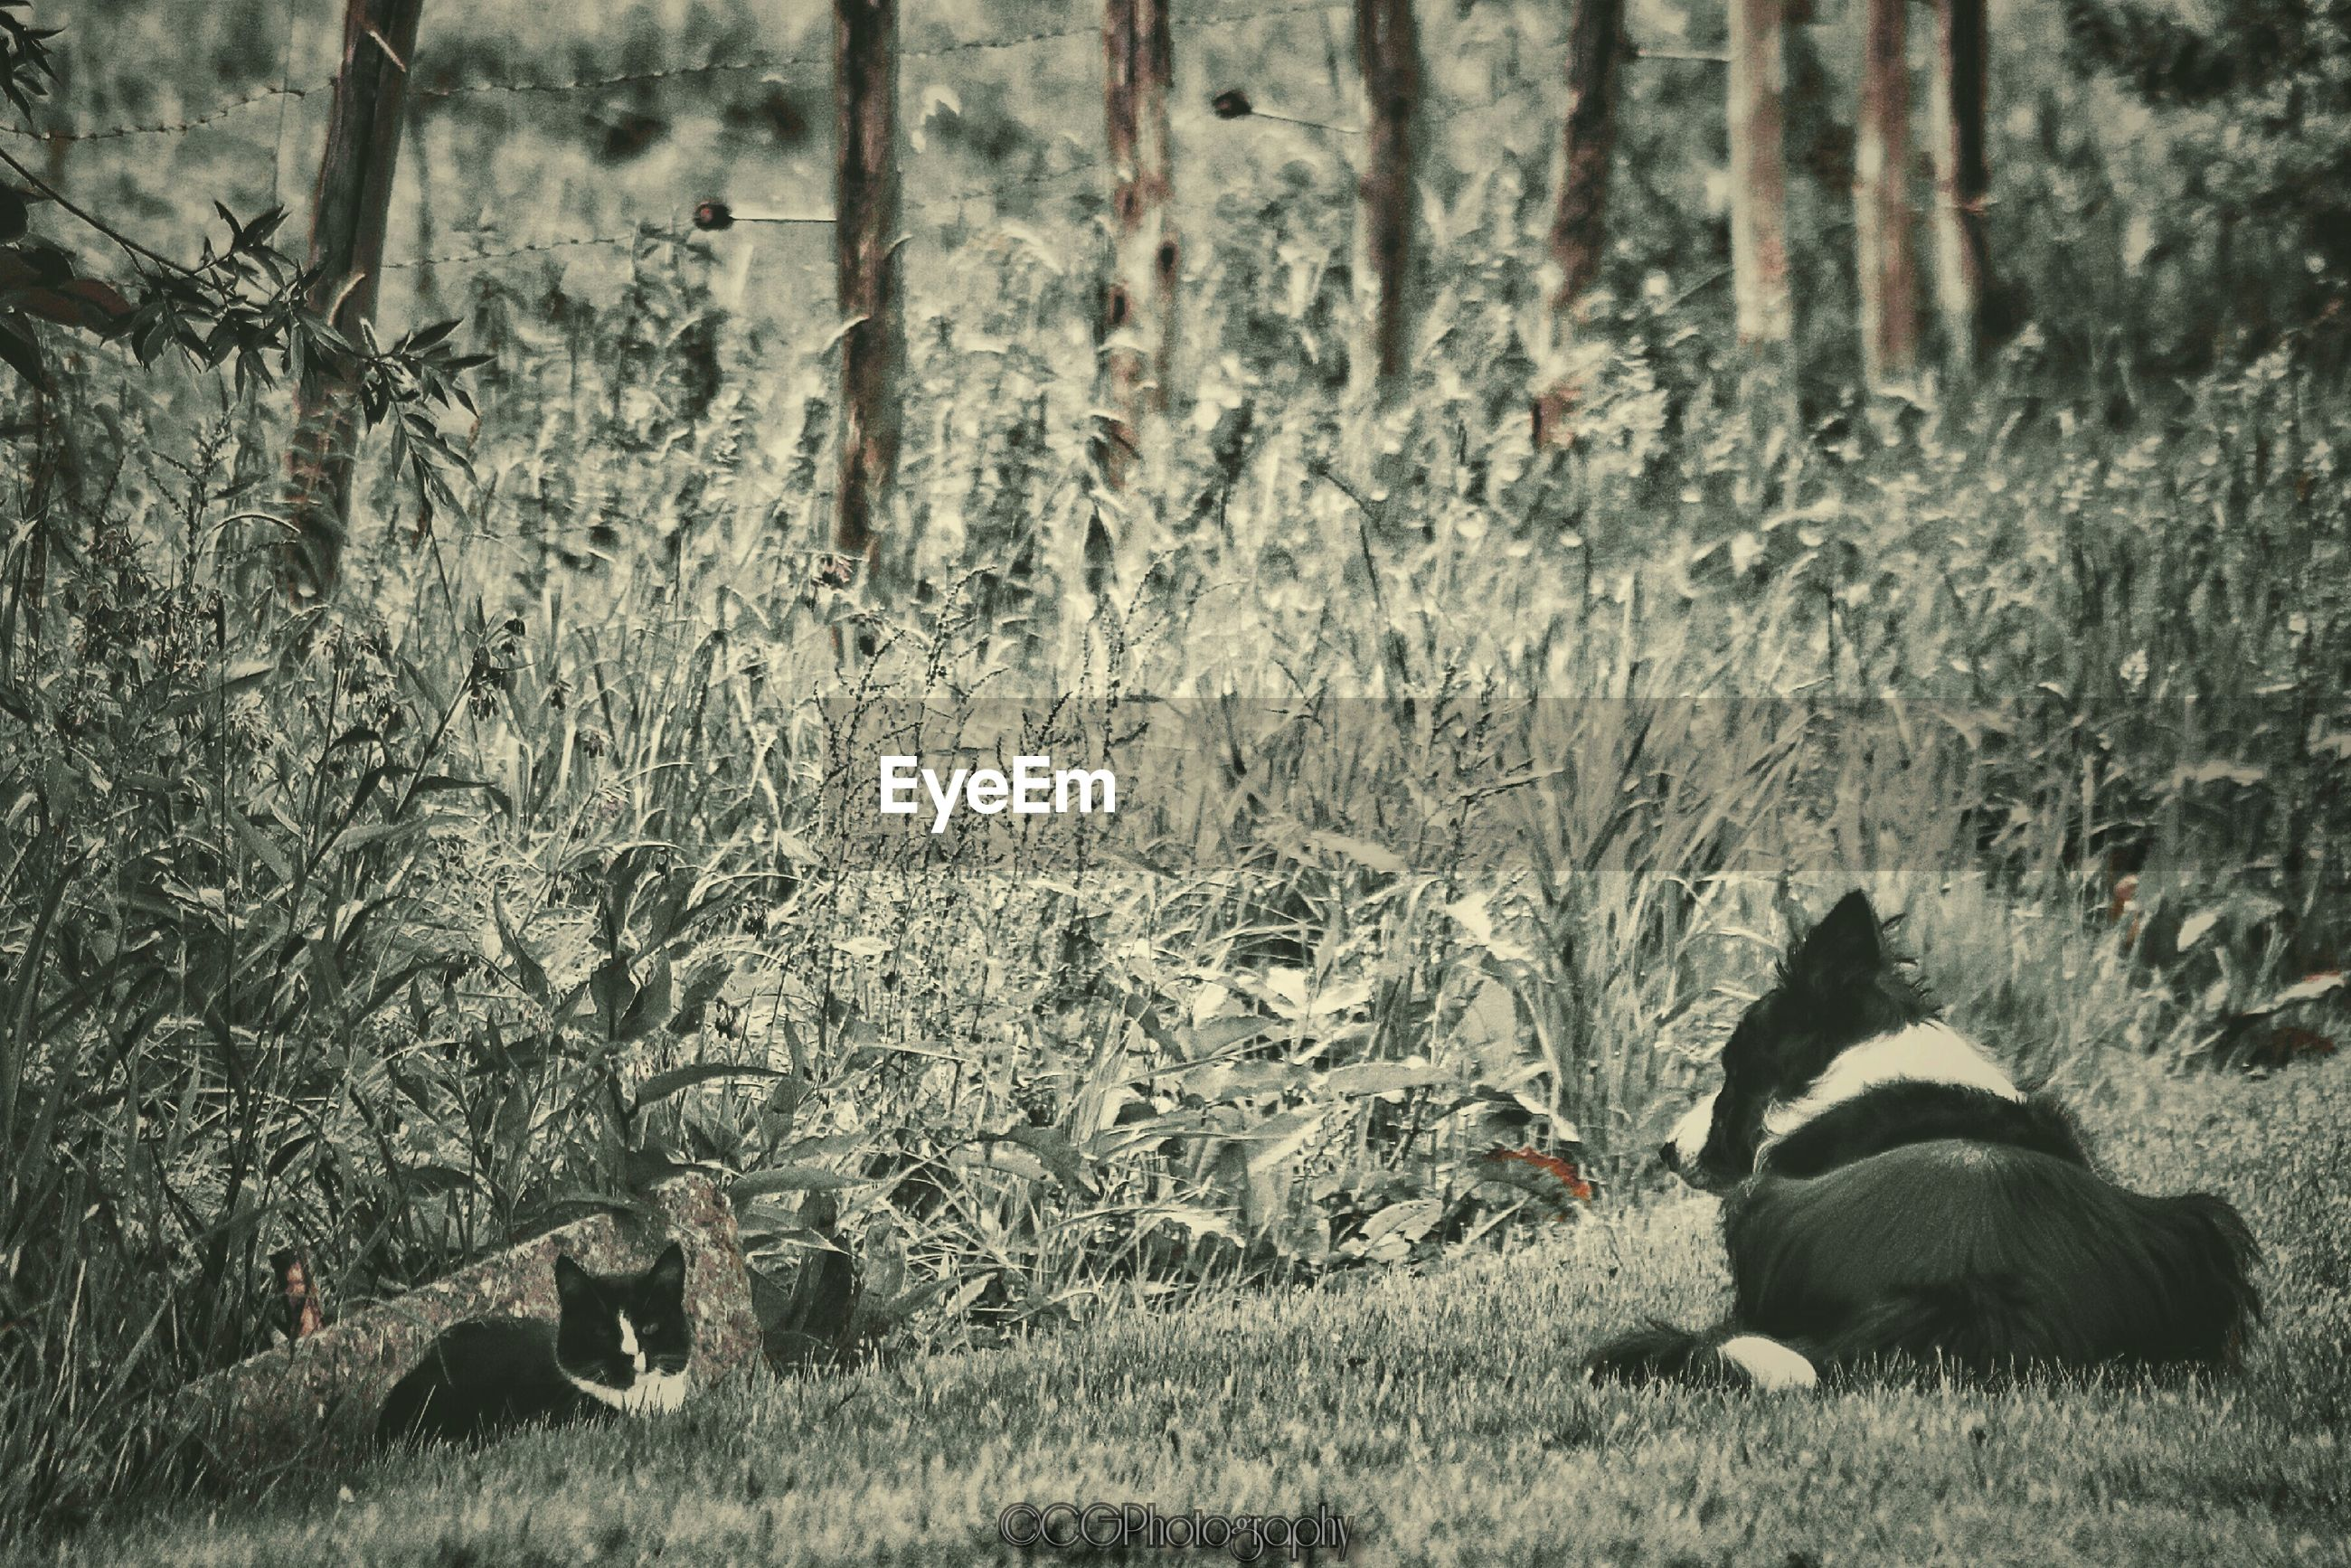 Dog and cat sitting on grassy field